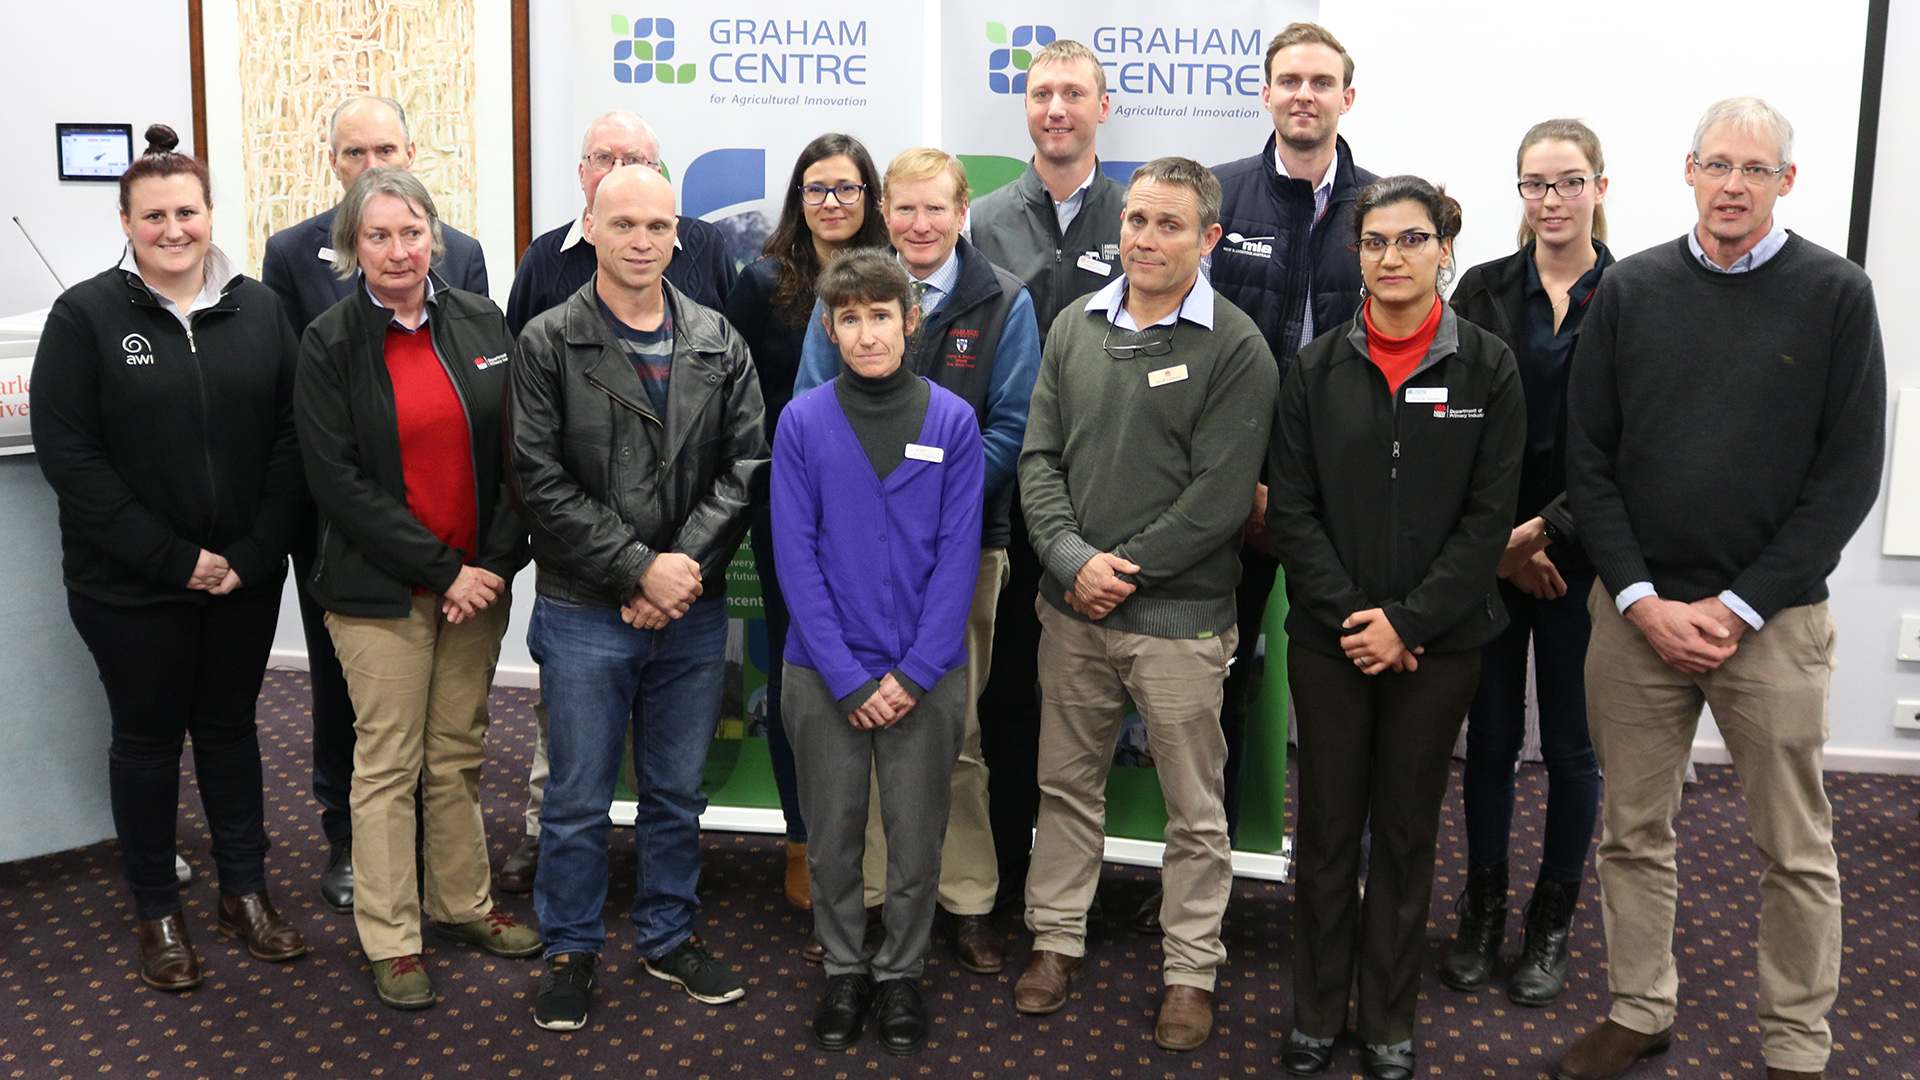 Speakers at the Graham Centre Livestock Forum